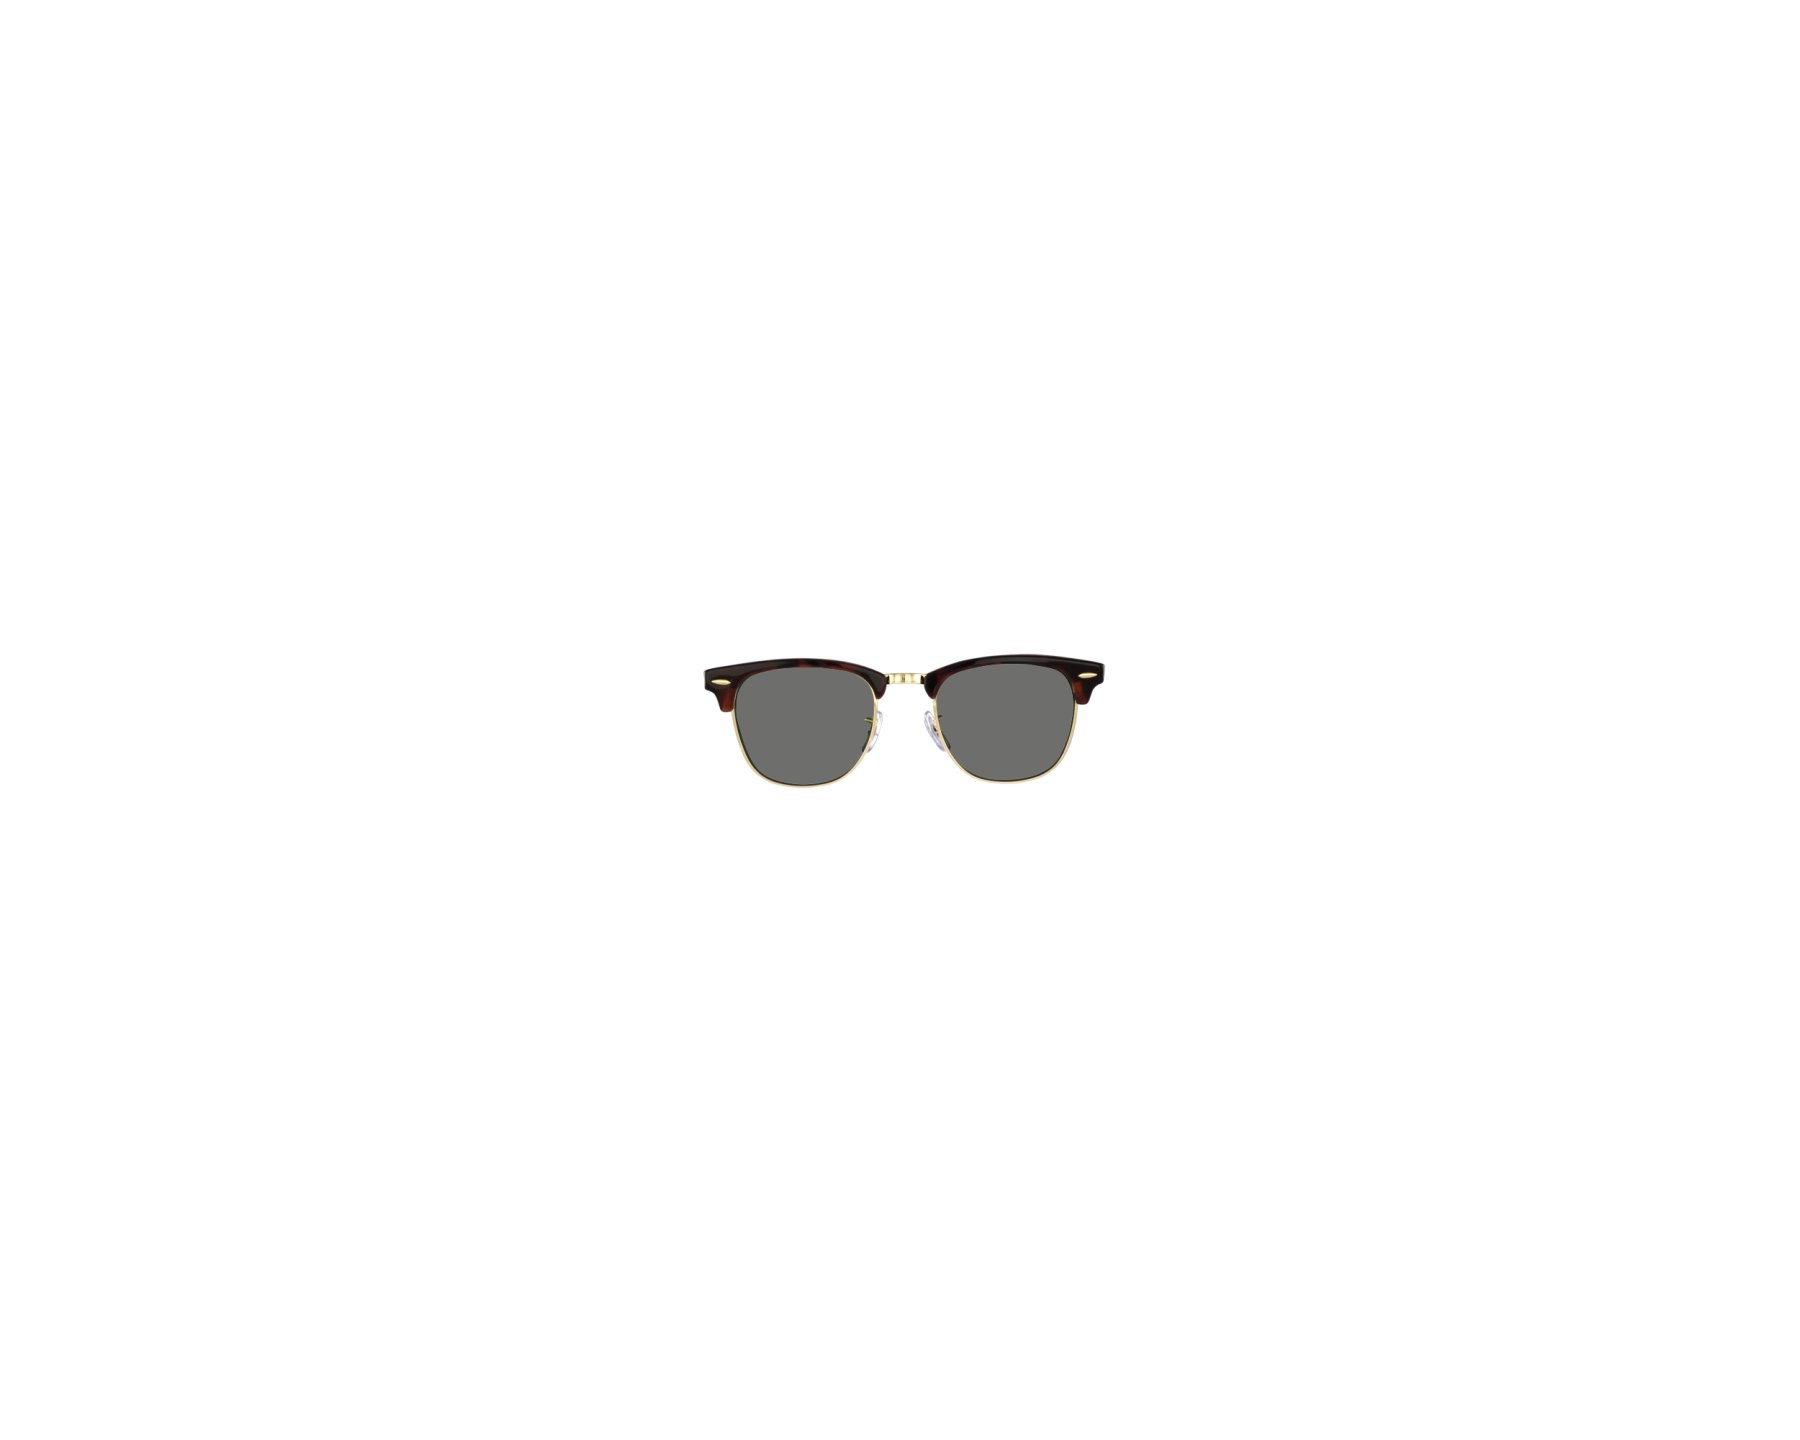 a52f4dbc1d9 Sunglasses Ray-Ban RB-3016 W0366 49-21 Brown Gold profile view